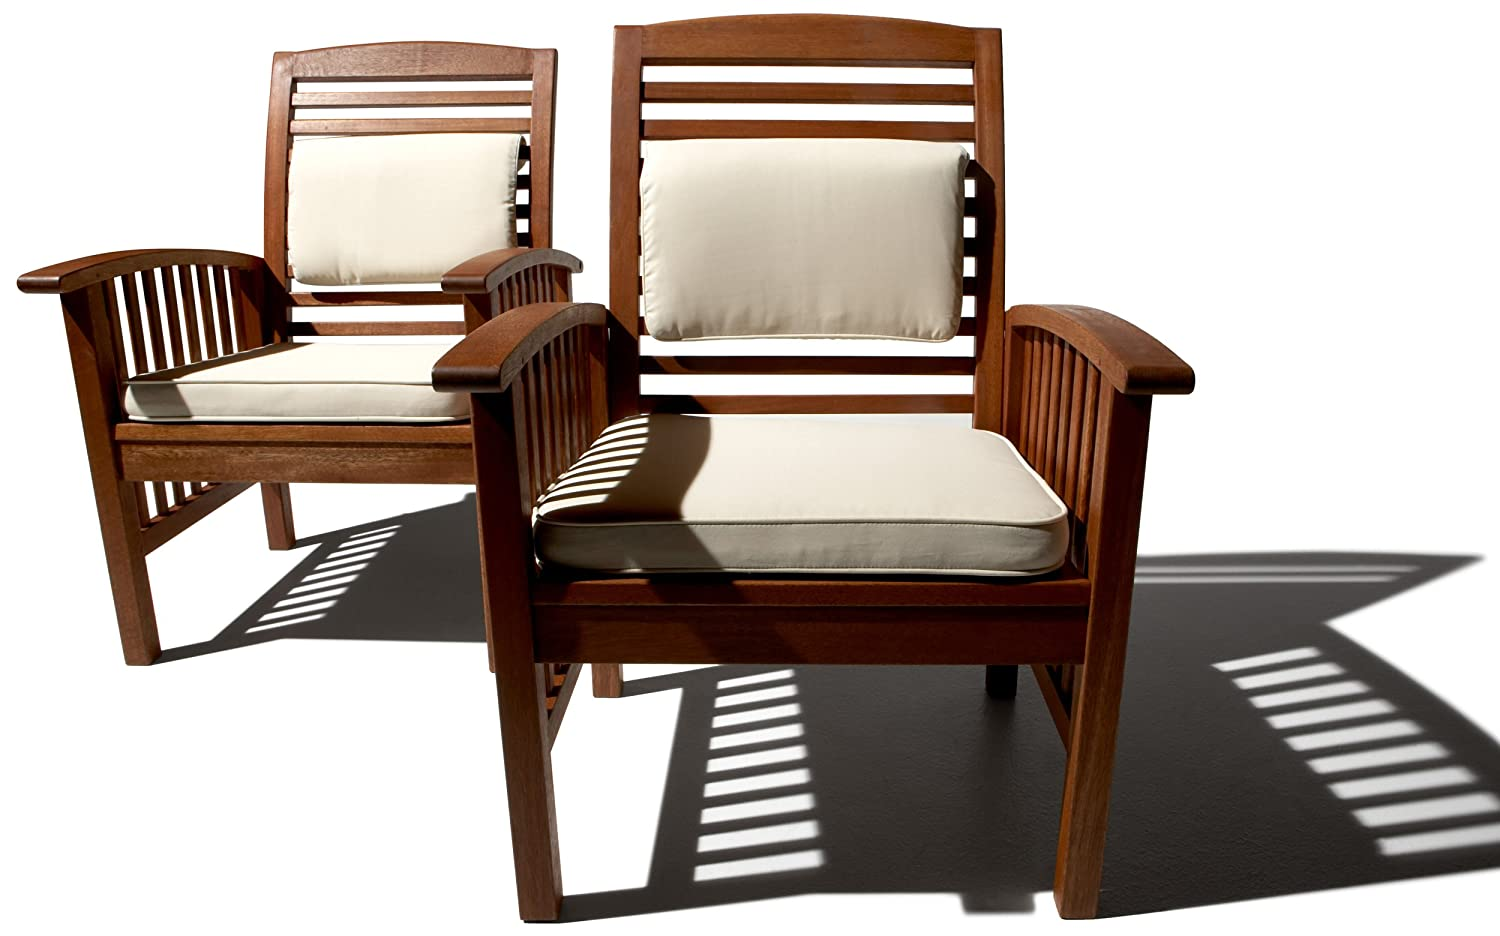 Amazon.com : Strathwood Gibranta All-Weather Hardwood Arm Chair, Set of 2 :  Patio Lounge Chairs : Garden & Outdoor